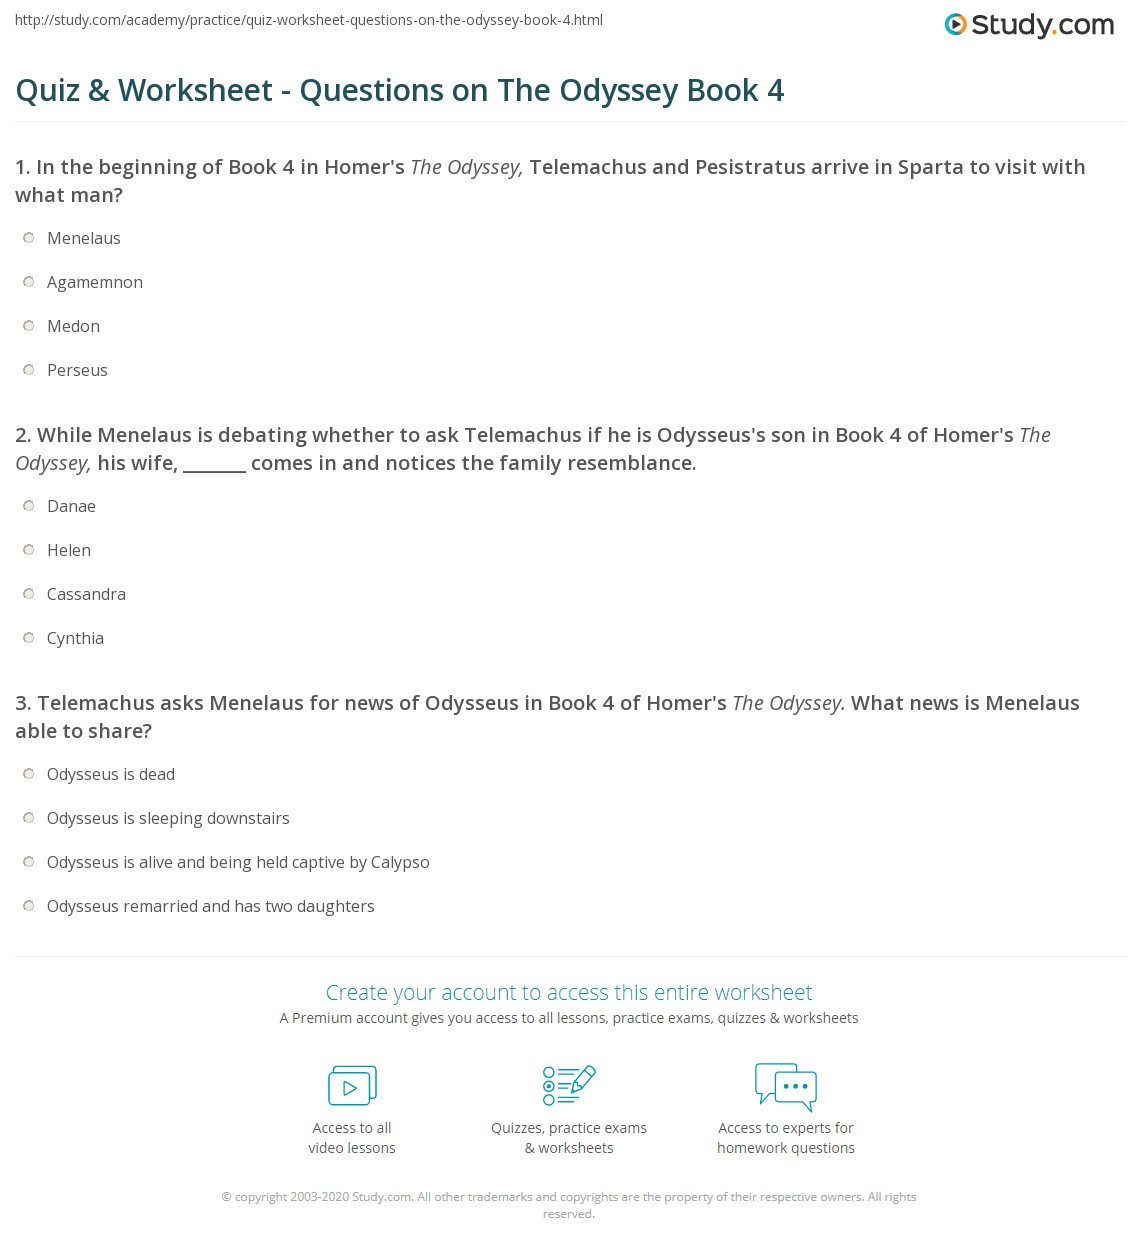 quiz worksheet questions on the odyssey book 4 study com rh study com Compass Odyssey Compass Odyssey